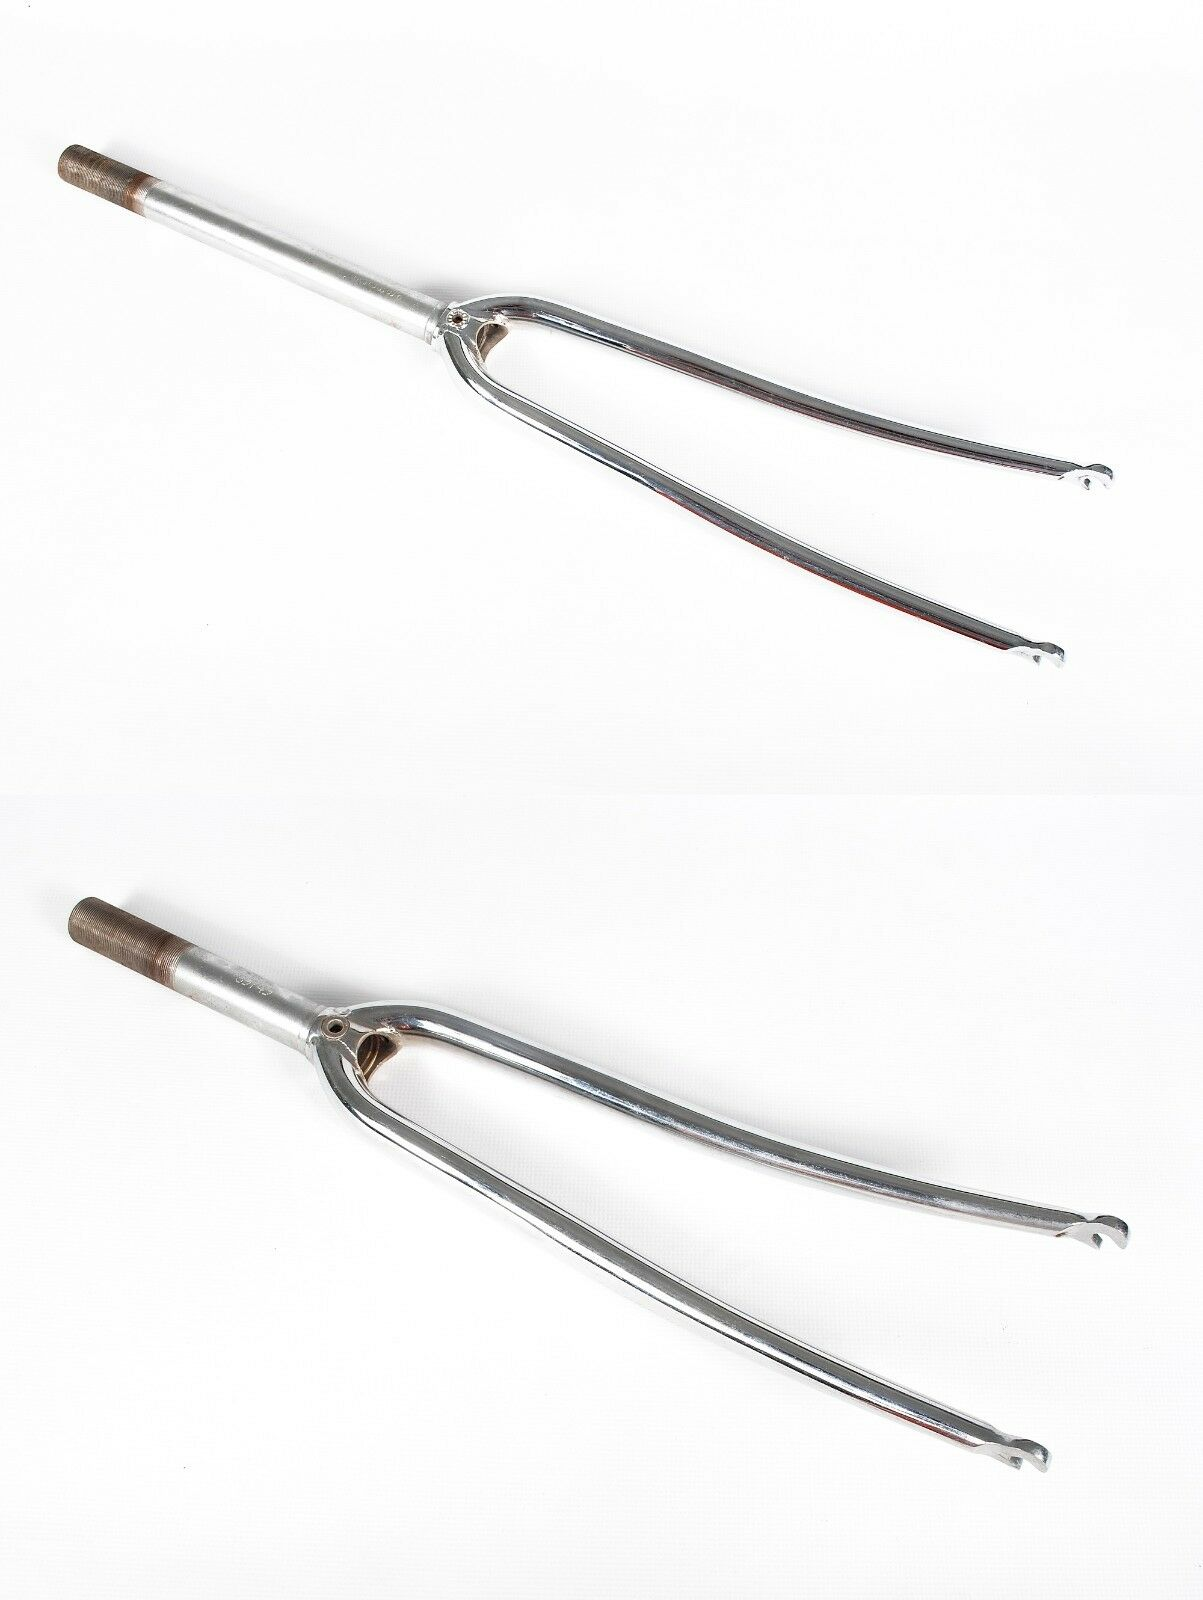 Vintage Bicycle  Fork 1  Threaded Aero Blades Chrome Steel Road Bike Fork NOS  support wholesale retail